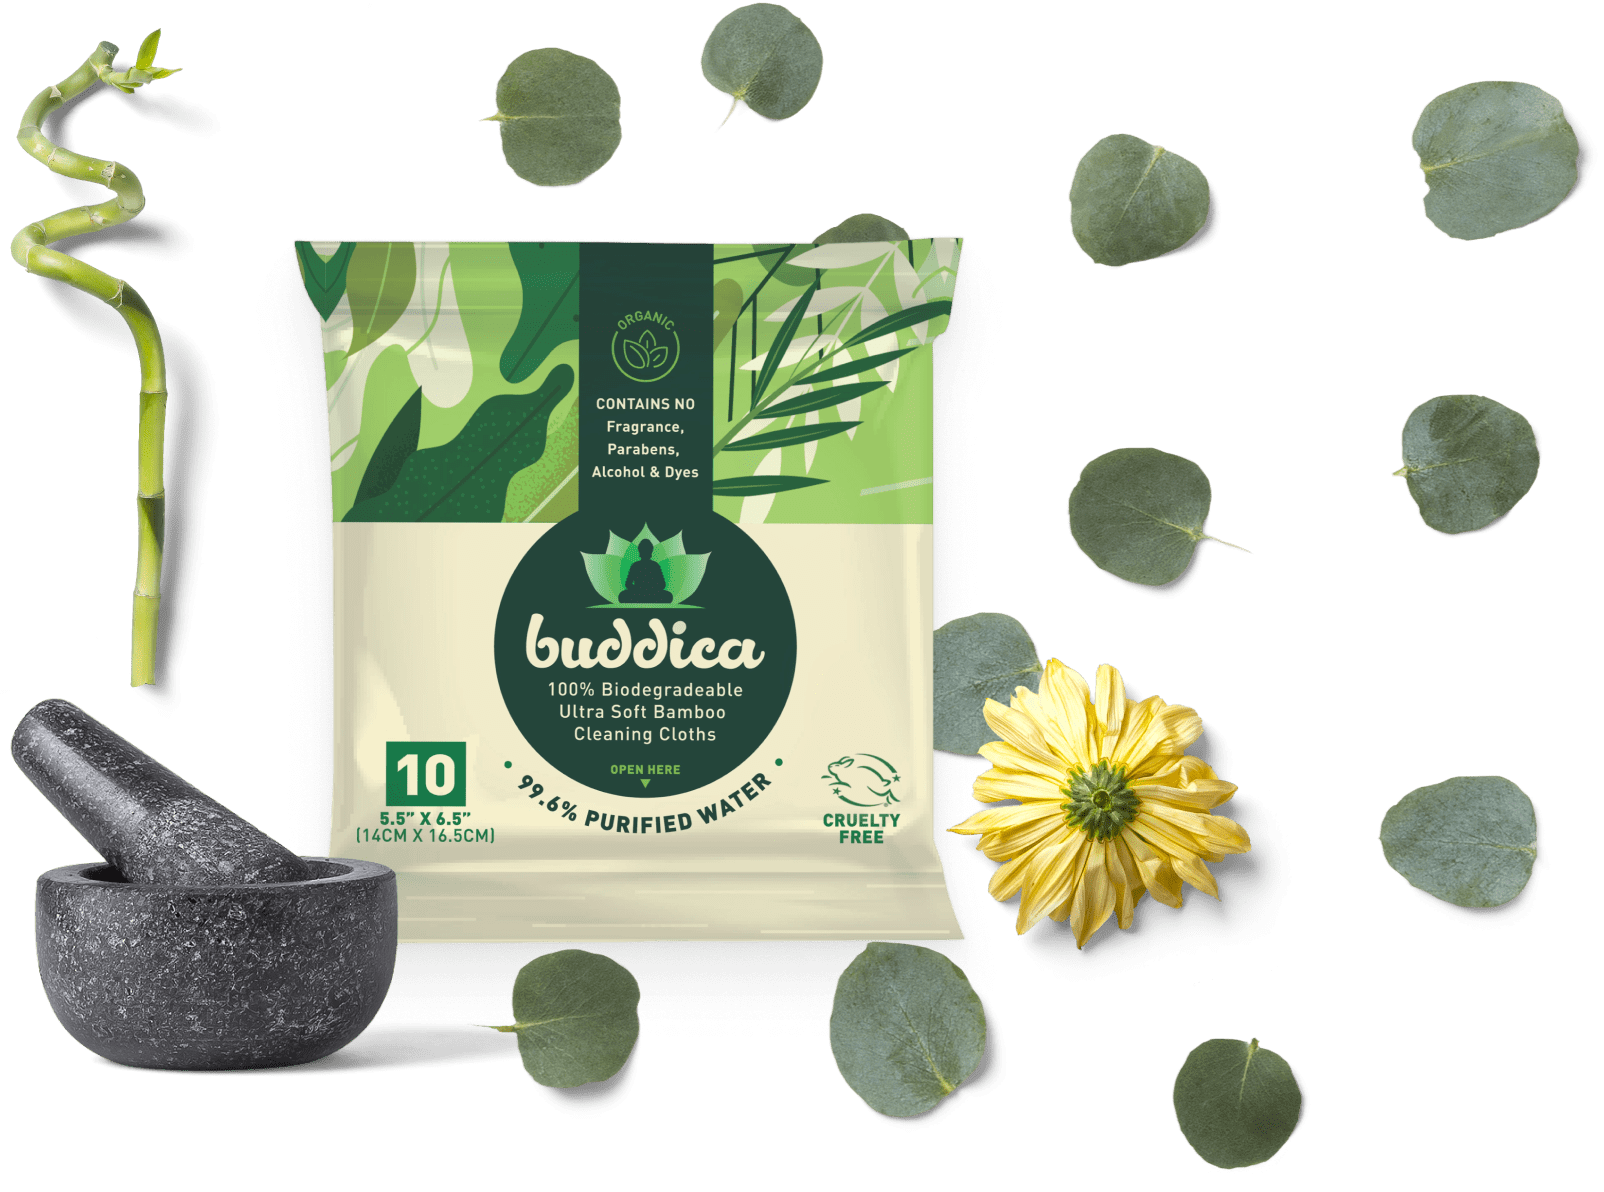 a pack of buddica wipes surrounded by a bamboo stick, scattering of leaves, a yellow flower and mortar and pestle.